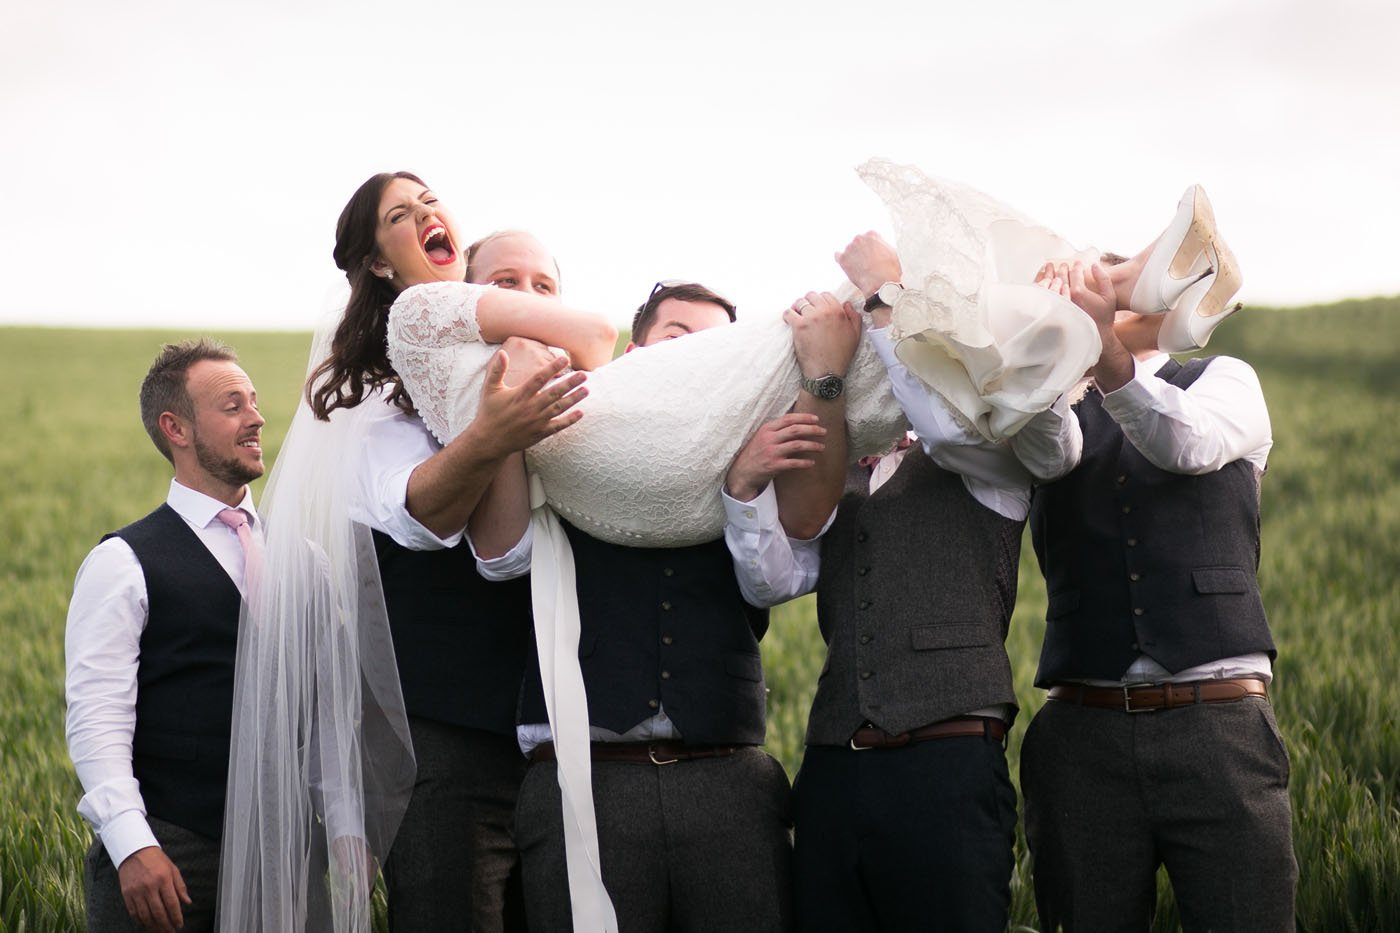 Bride is laughing while being picked up by the ushers